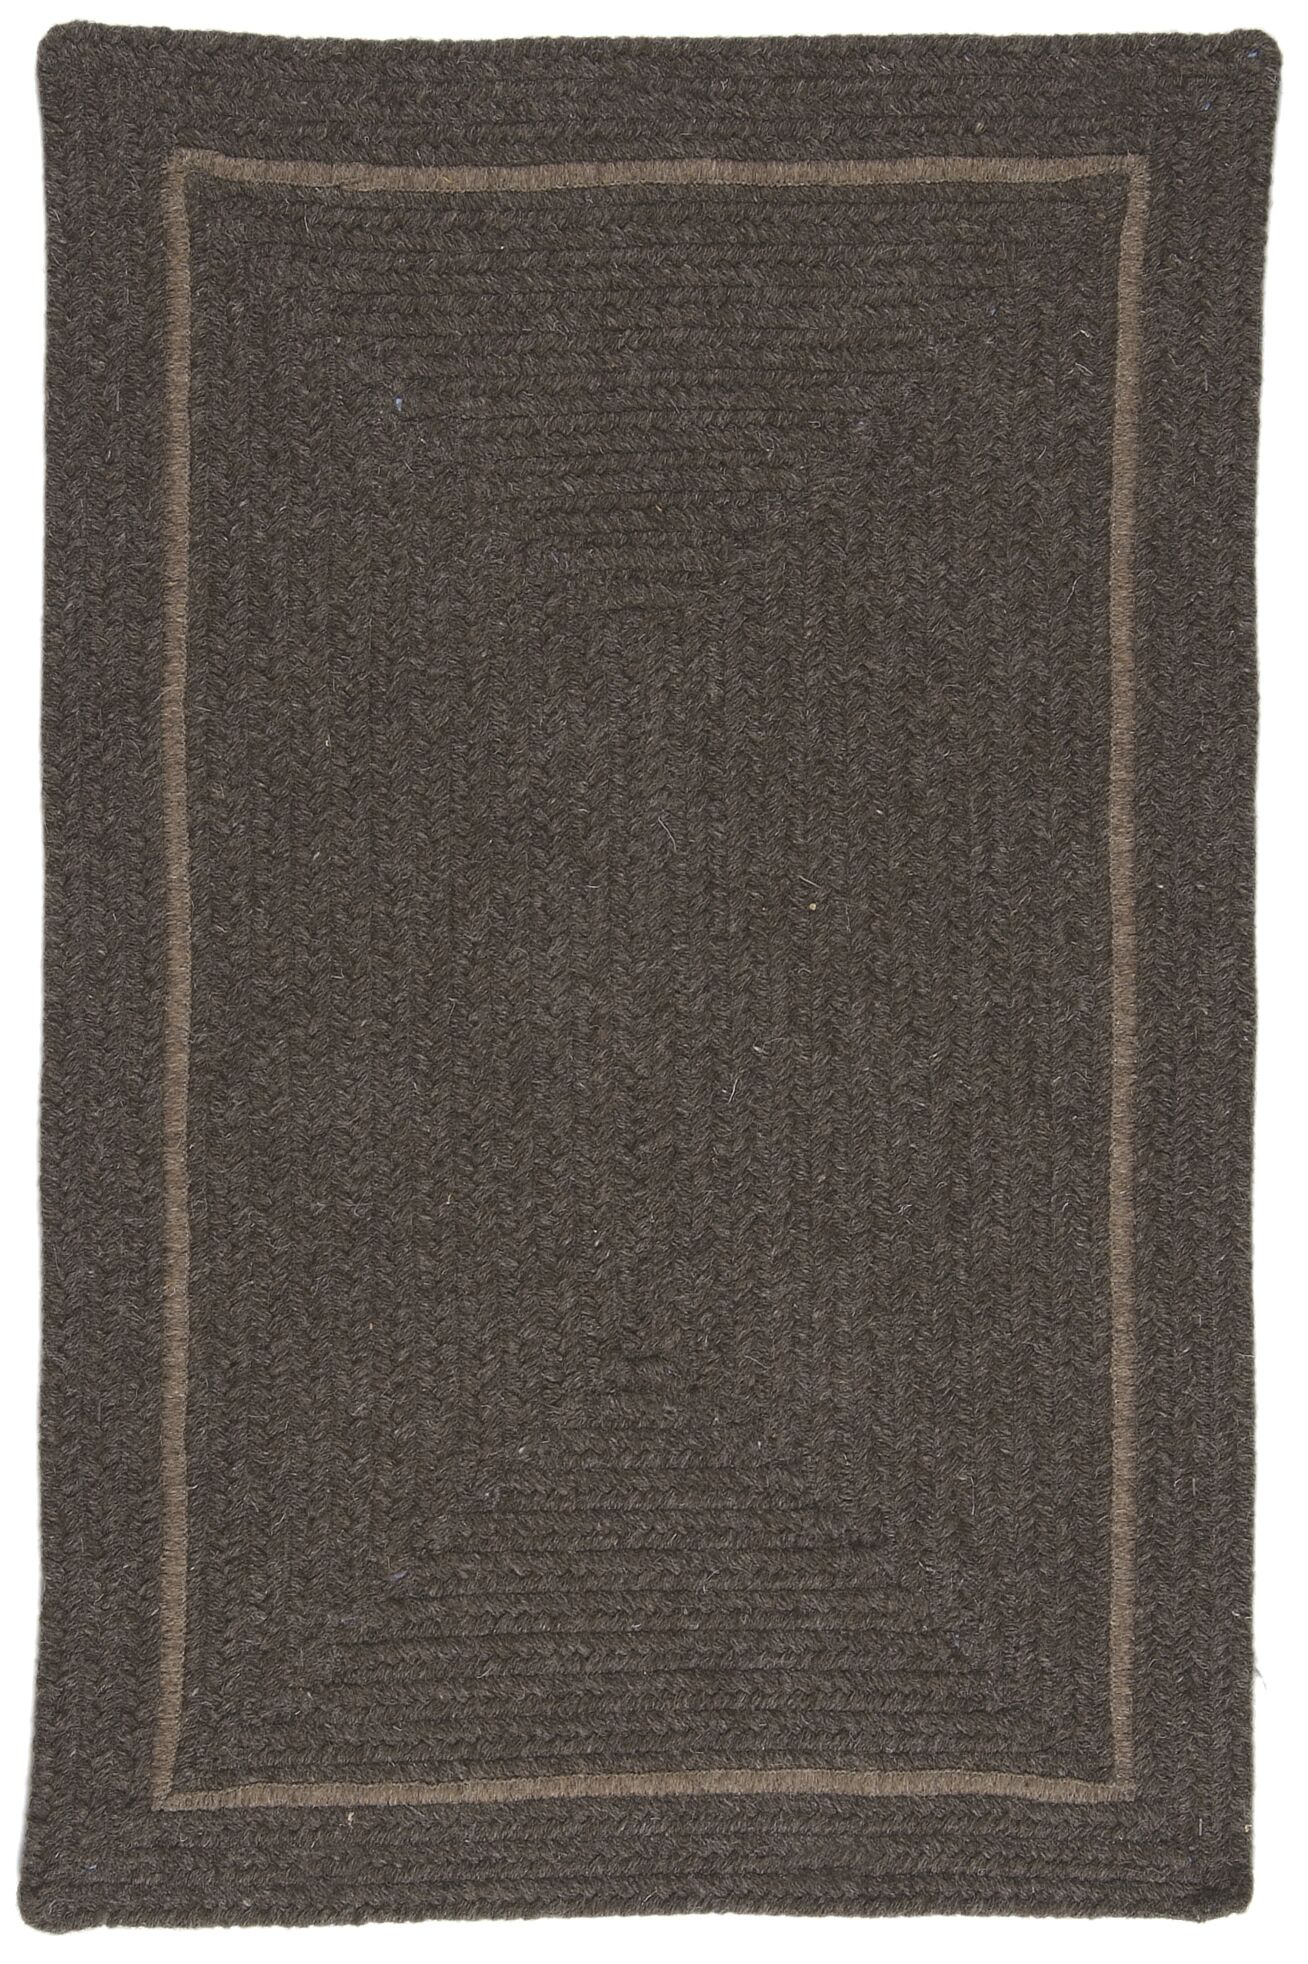 Shear Natural Rural Earth Area Rug Rug Size: Rectangle 2' x 4'